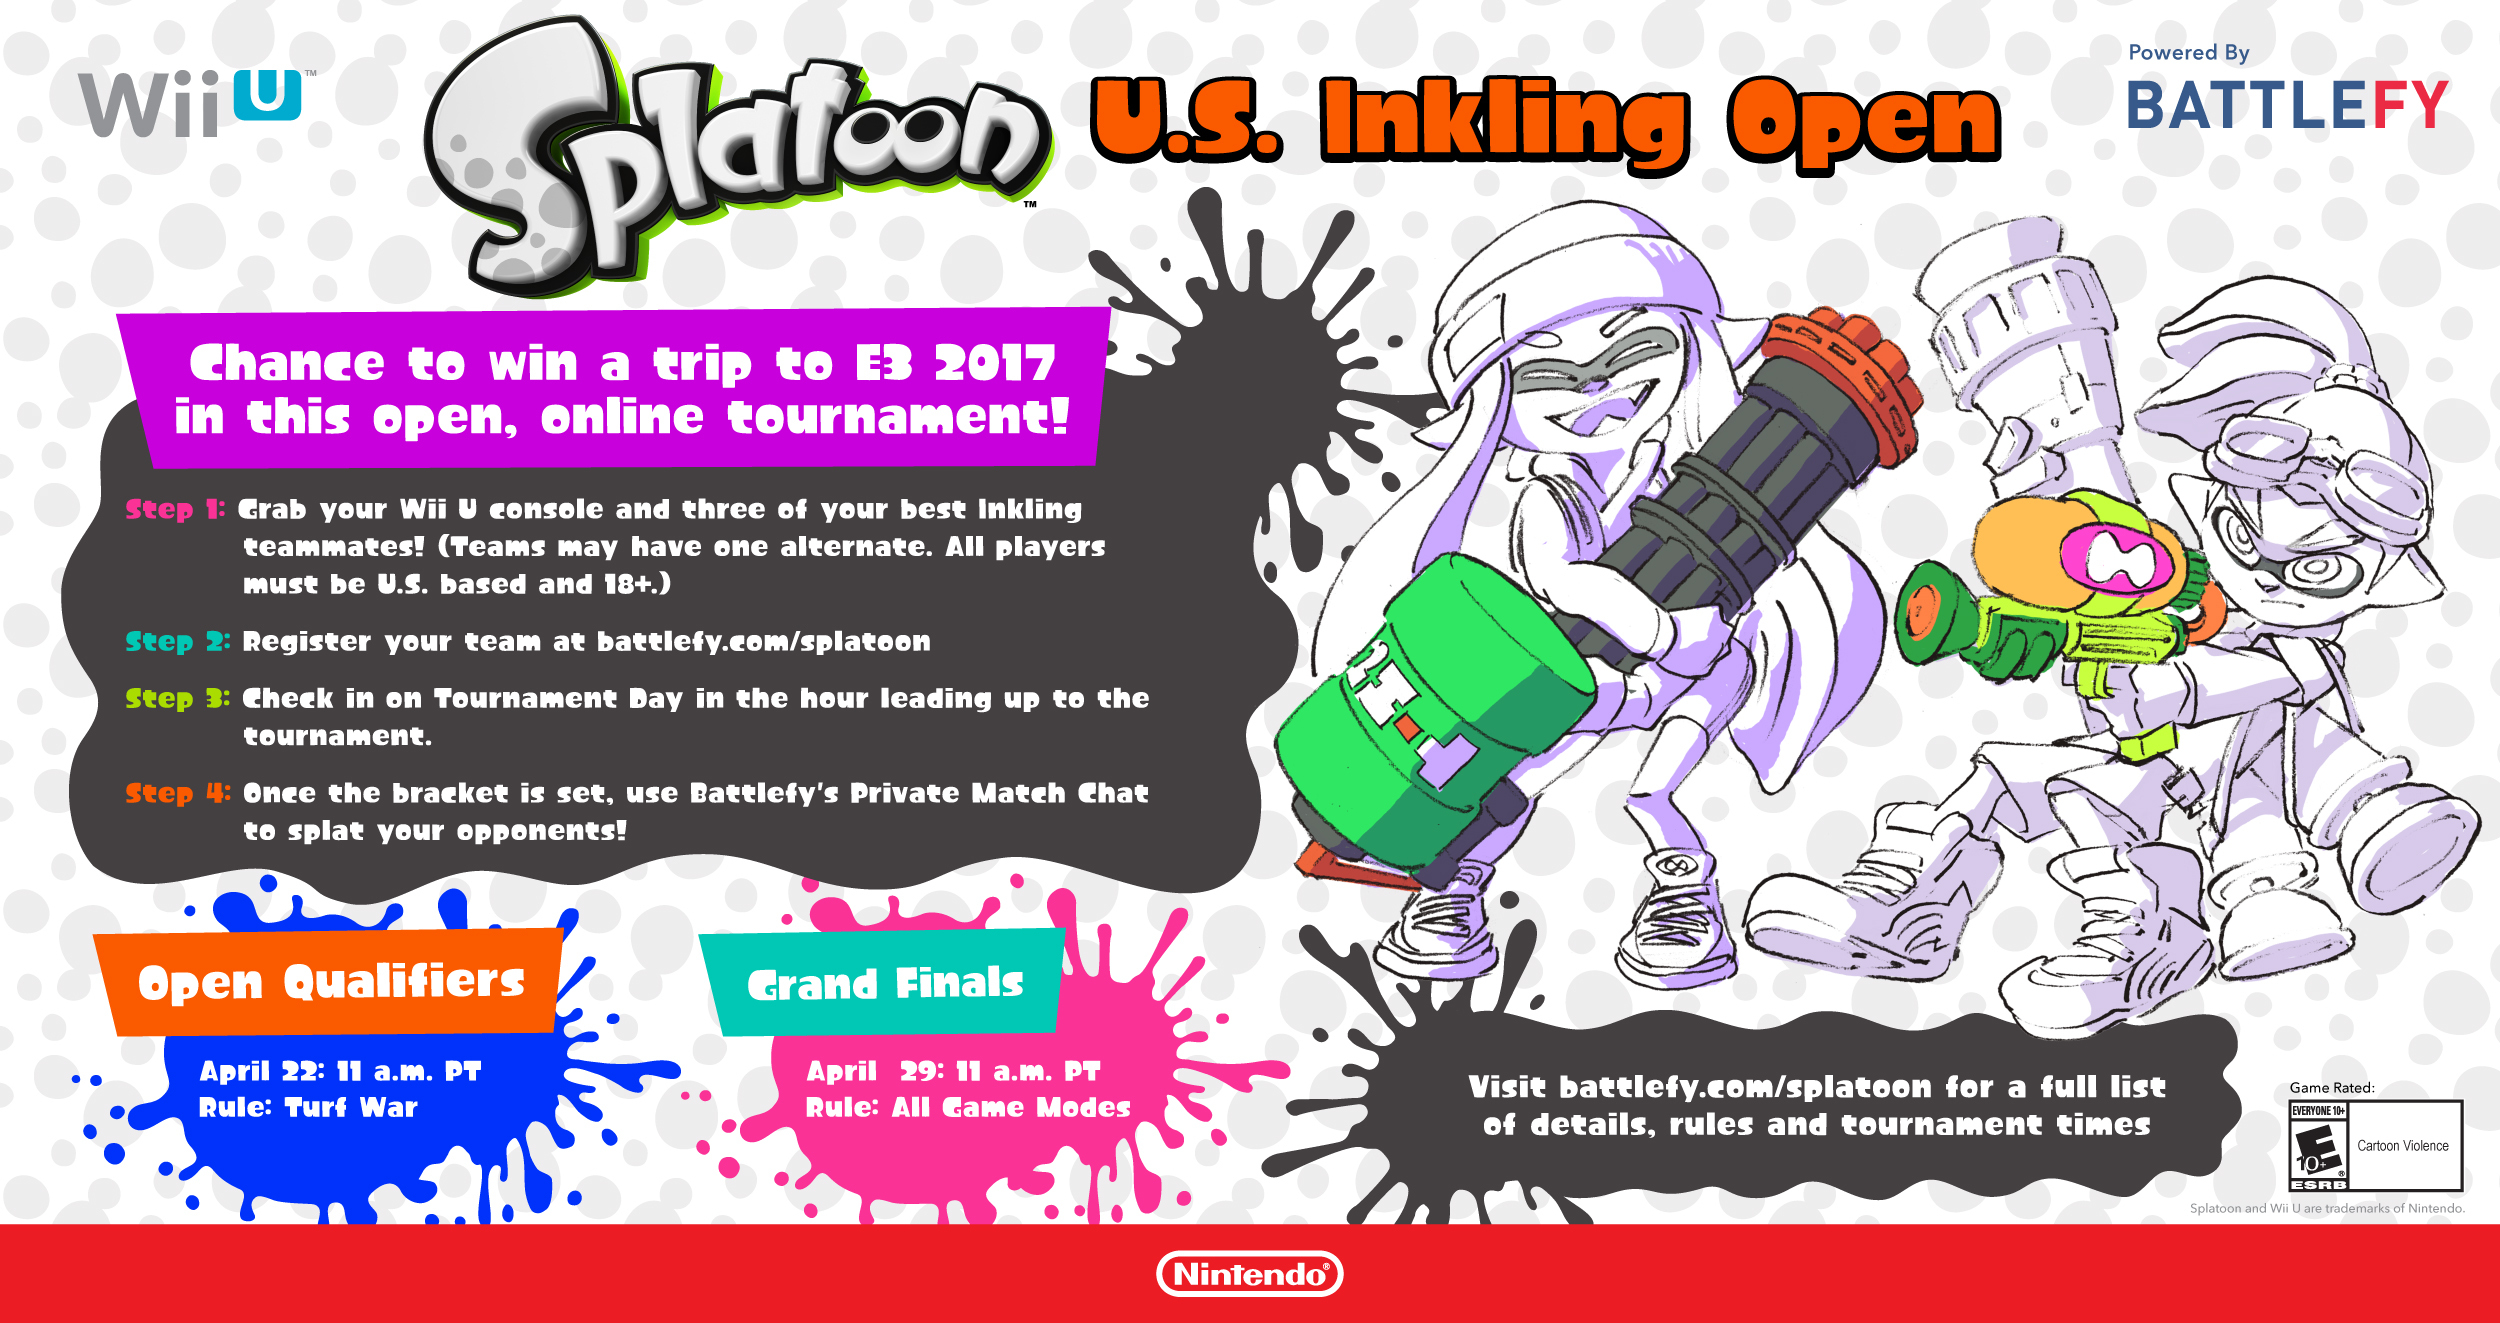 Show Off Your Skills in the Splatoon U.S. Inkling Open Tournament For a Chance to Win a Trip to E3 2017 (Graphic: Business Wire)